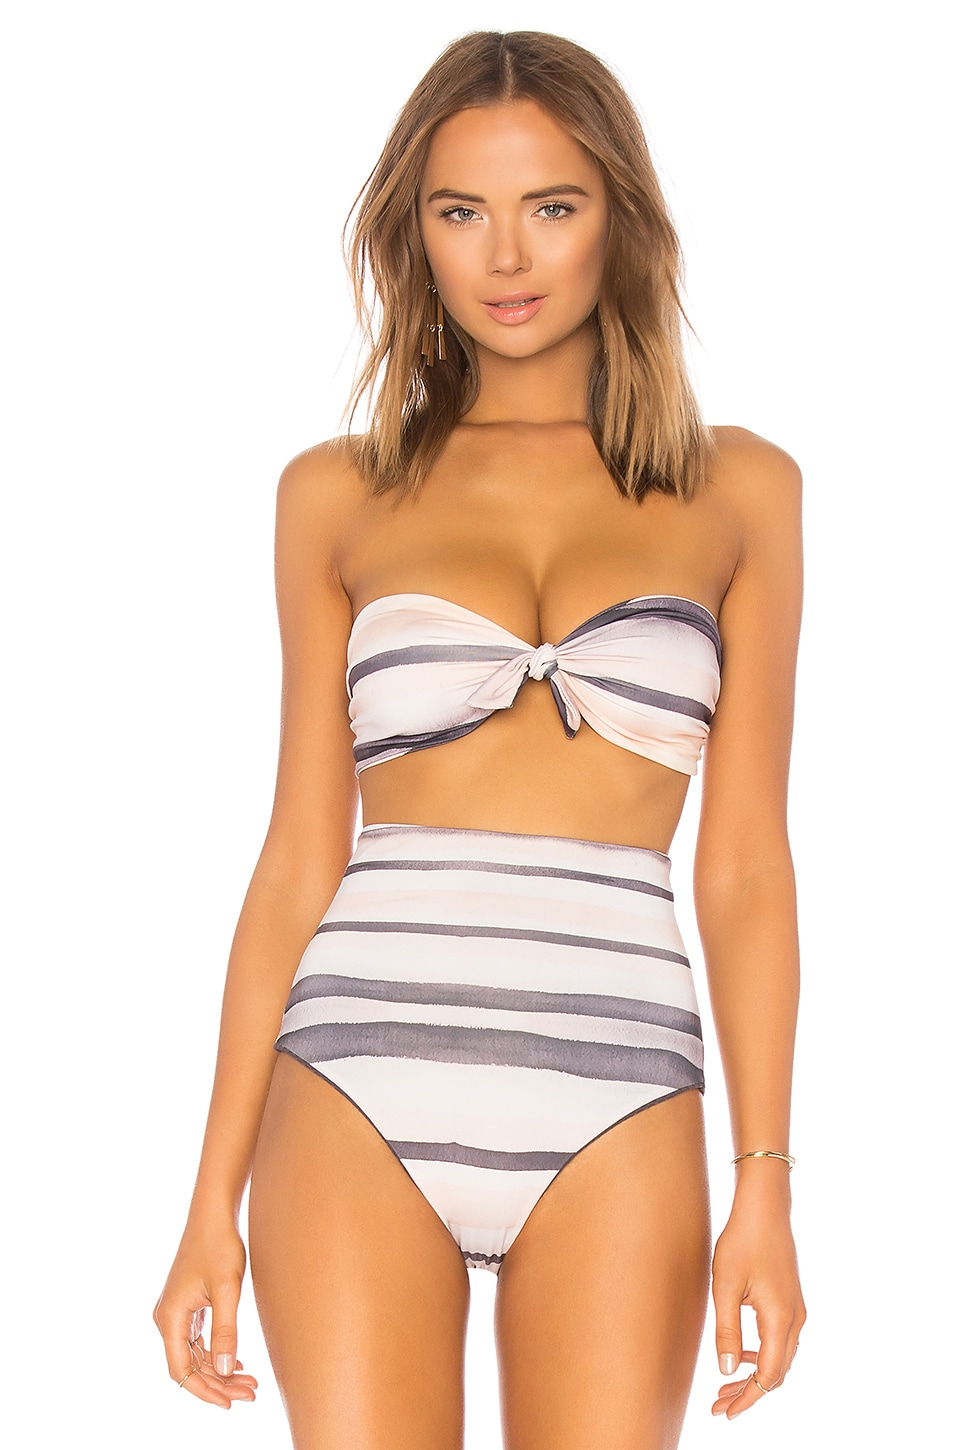 CALI DREAMING NUBBY BANDEAU TOP